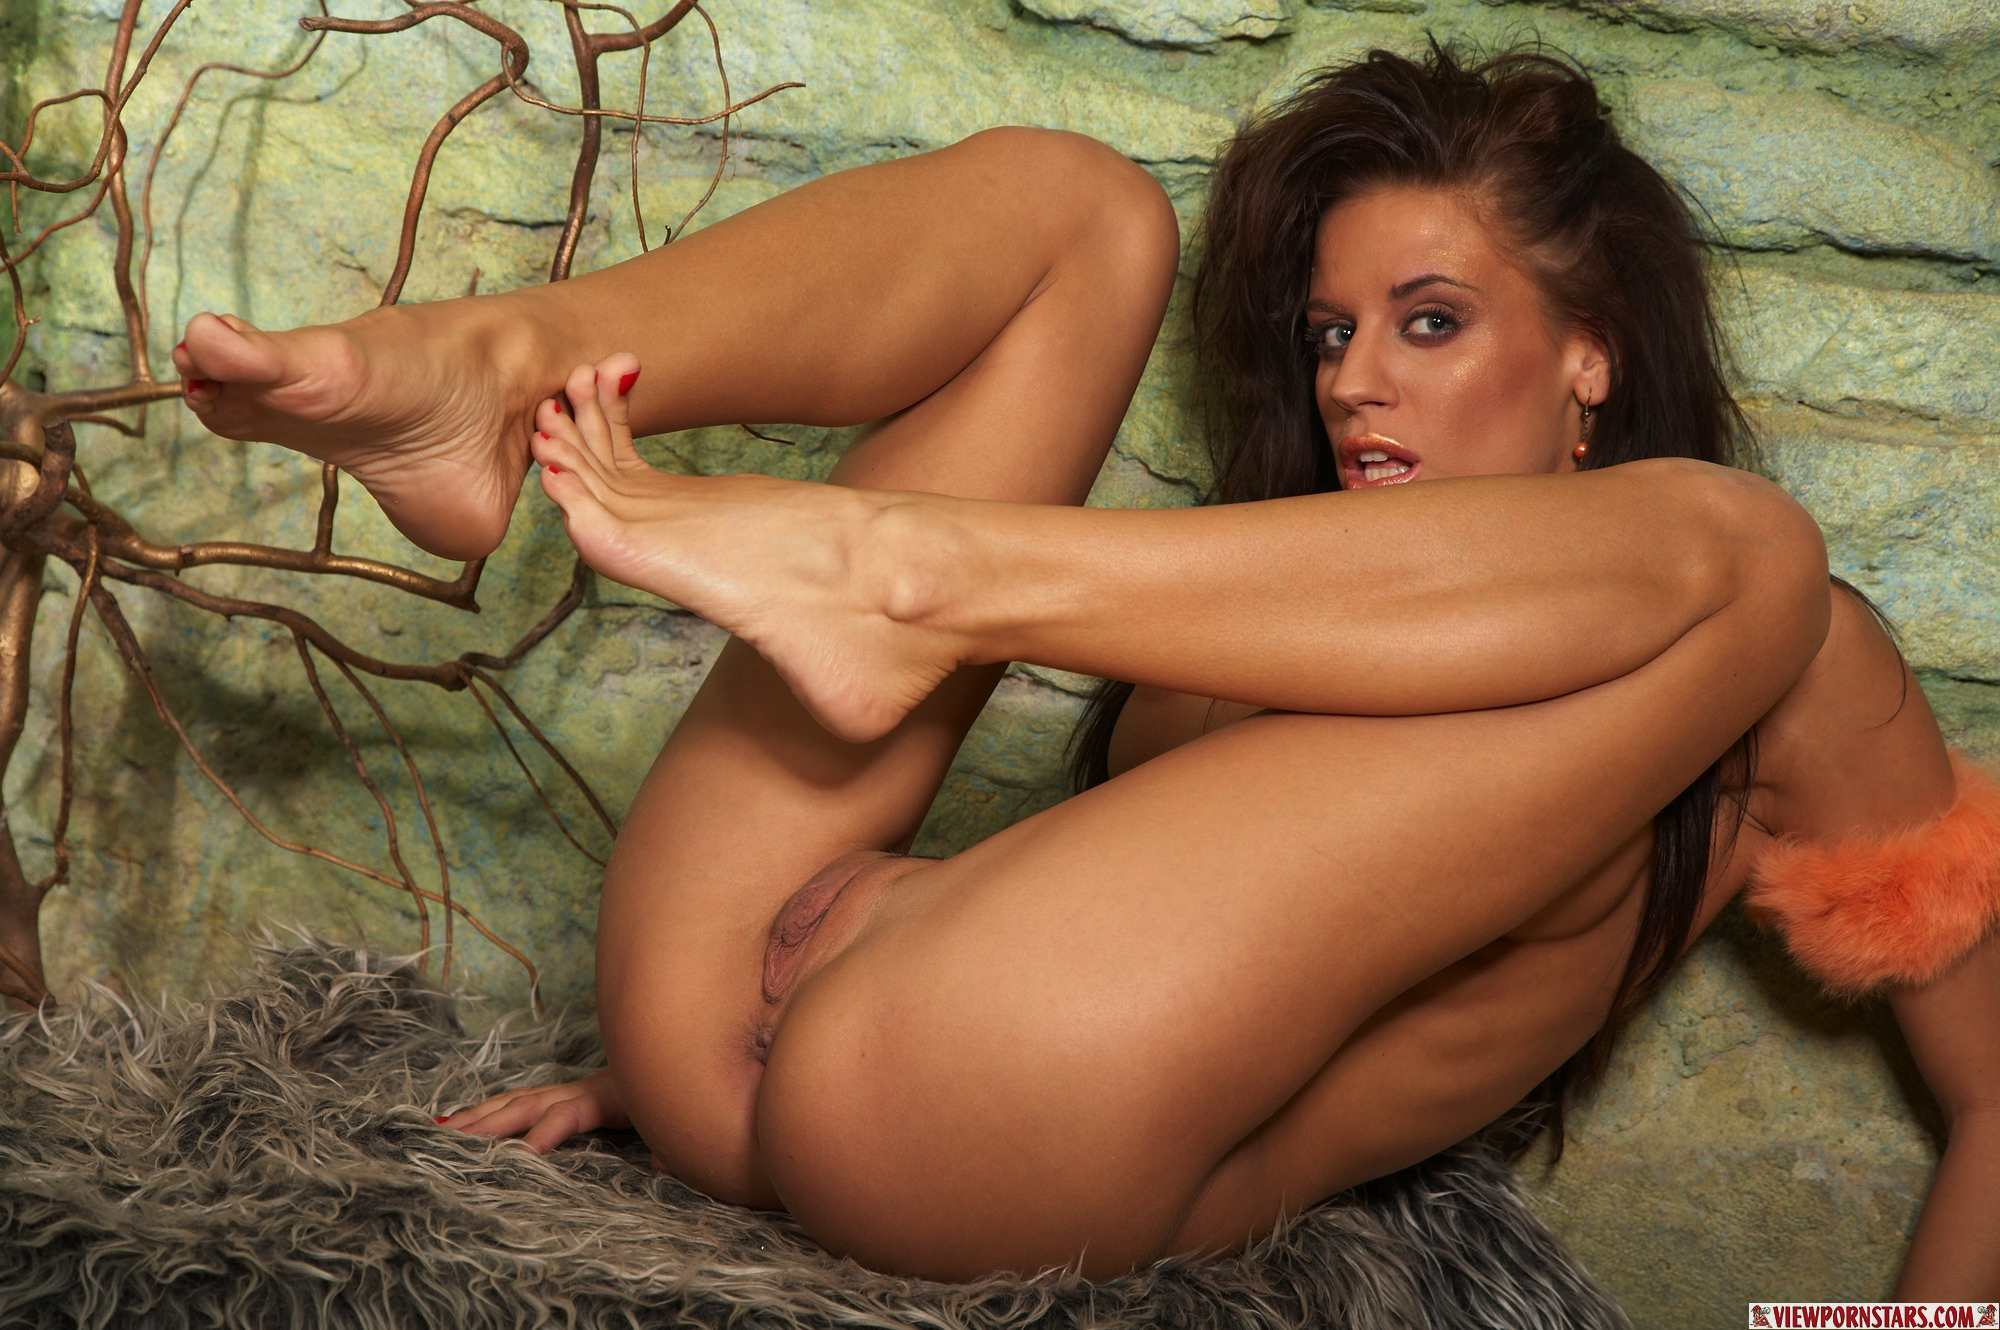 hairy female porn stars naked